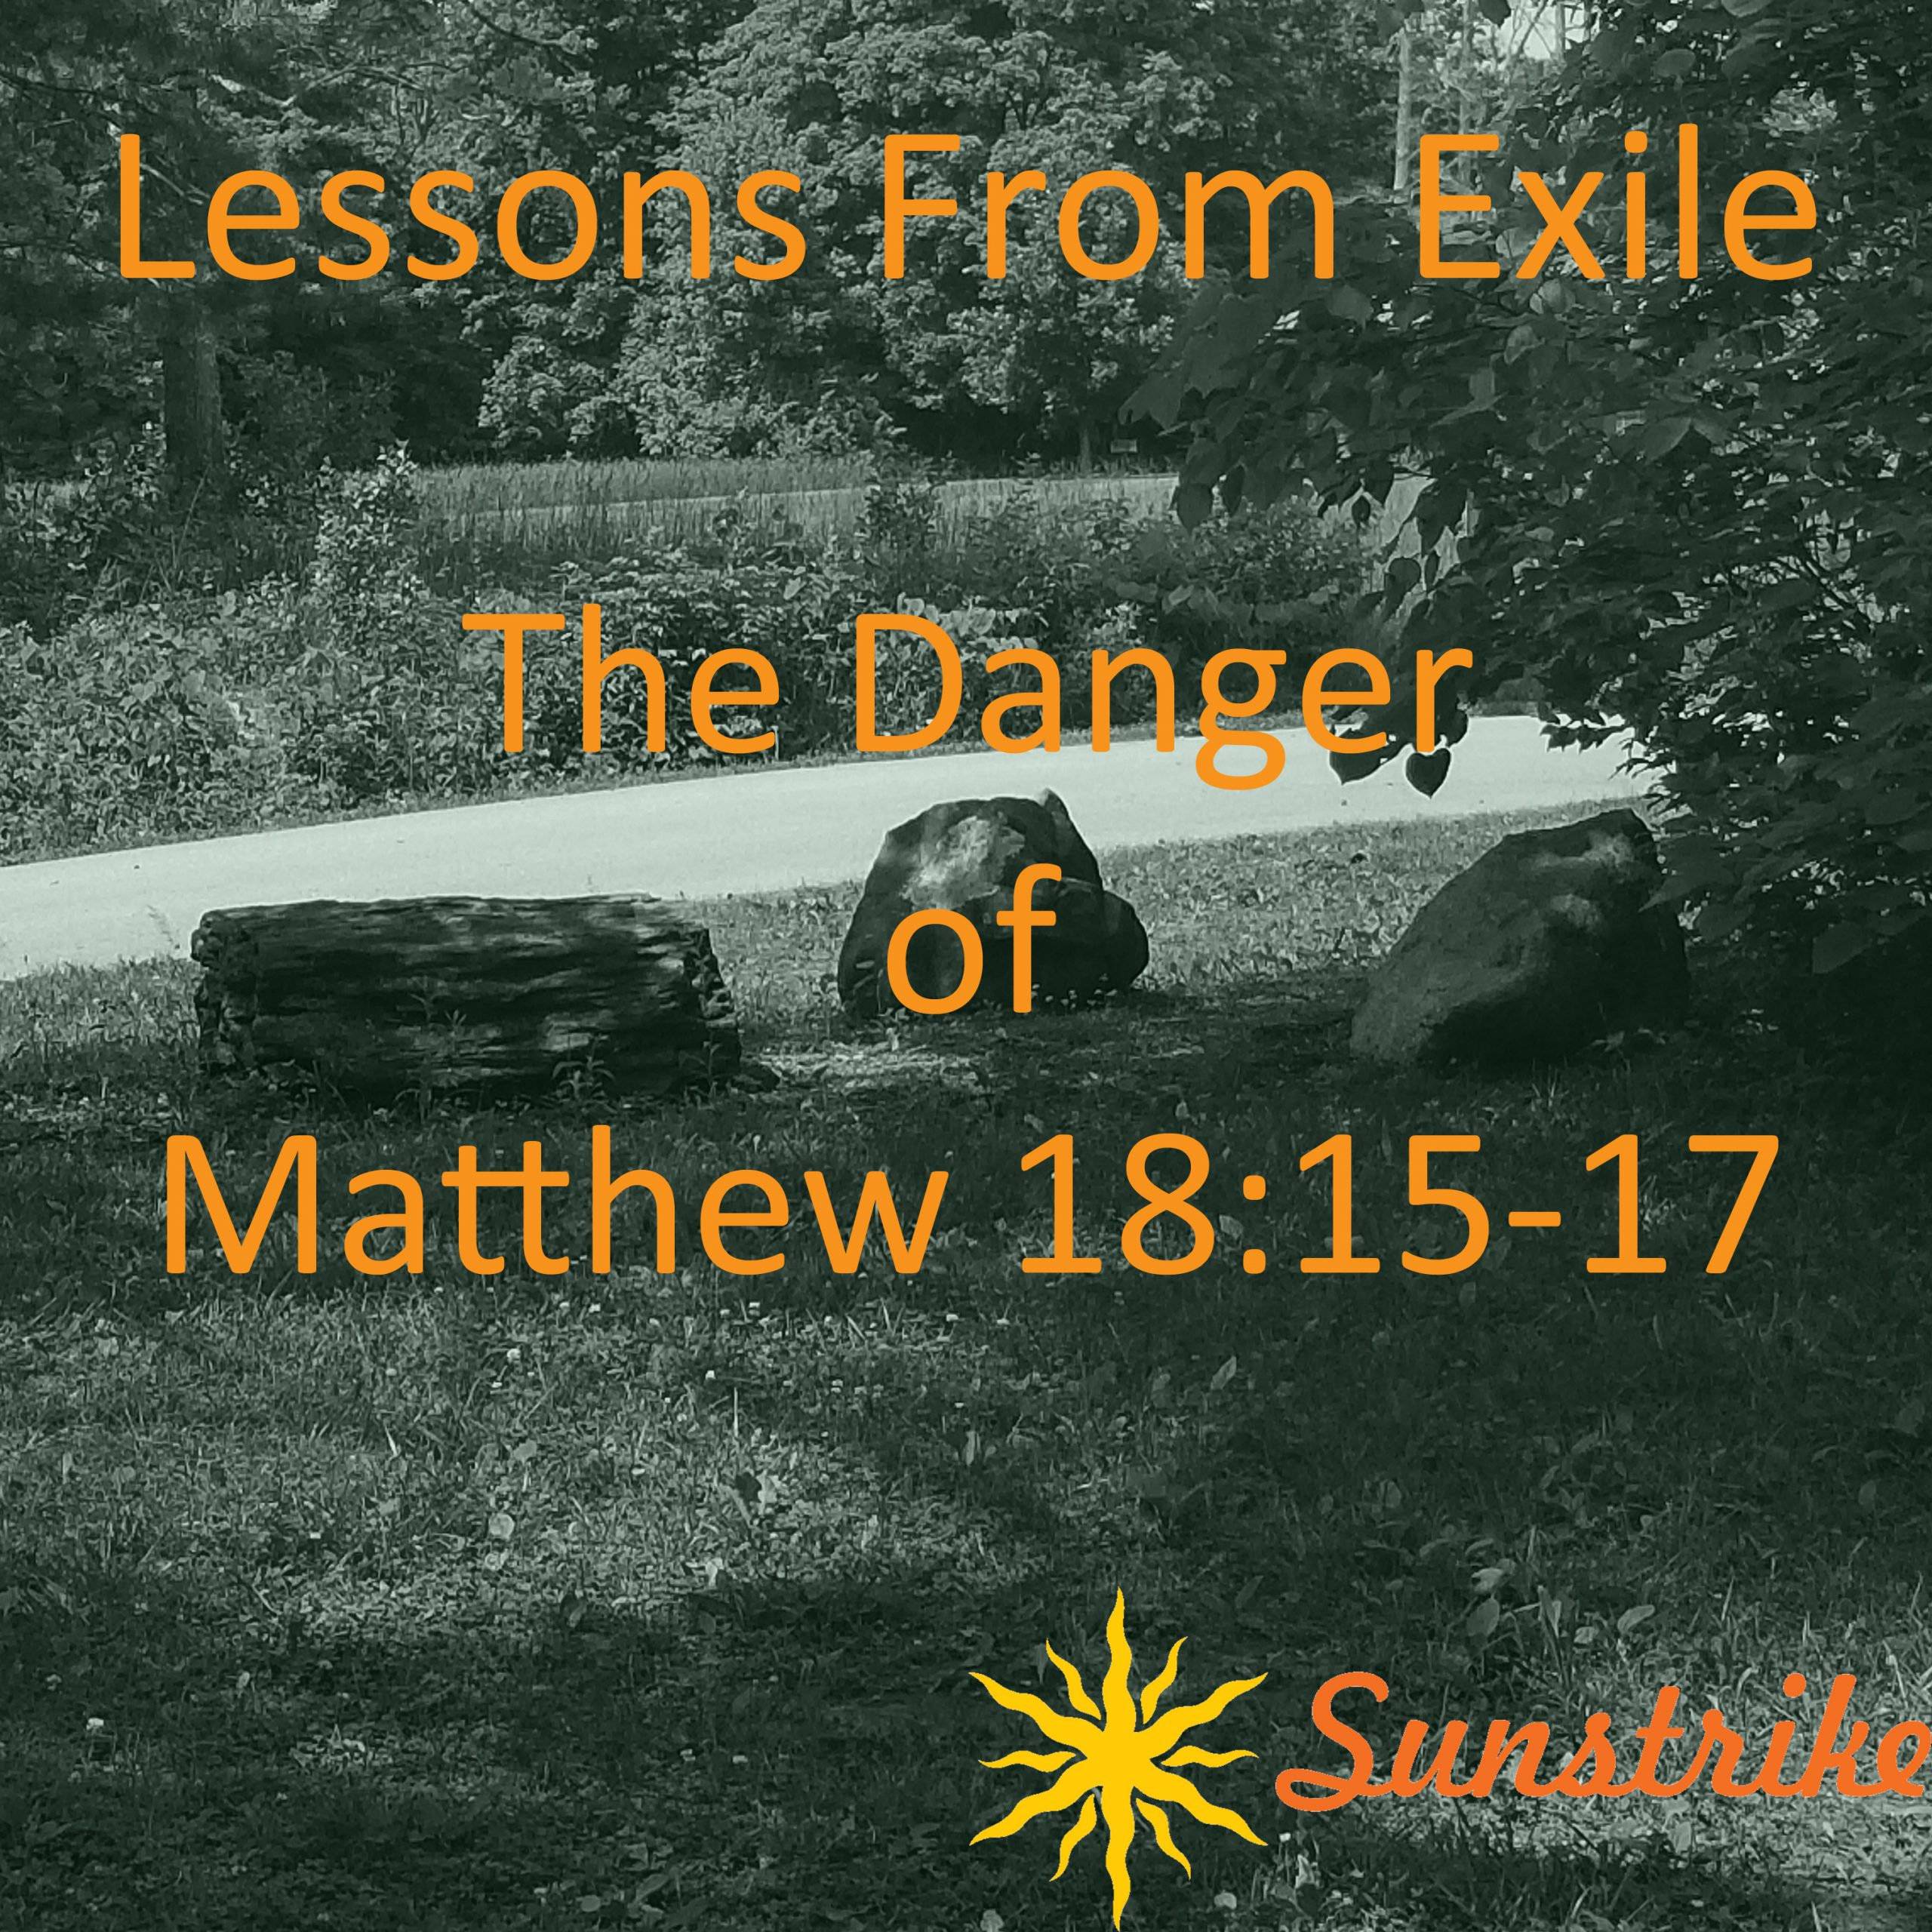 Lessons from Exile #53: The Danger of Matthew 18:15-17